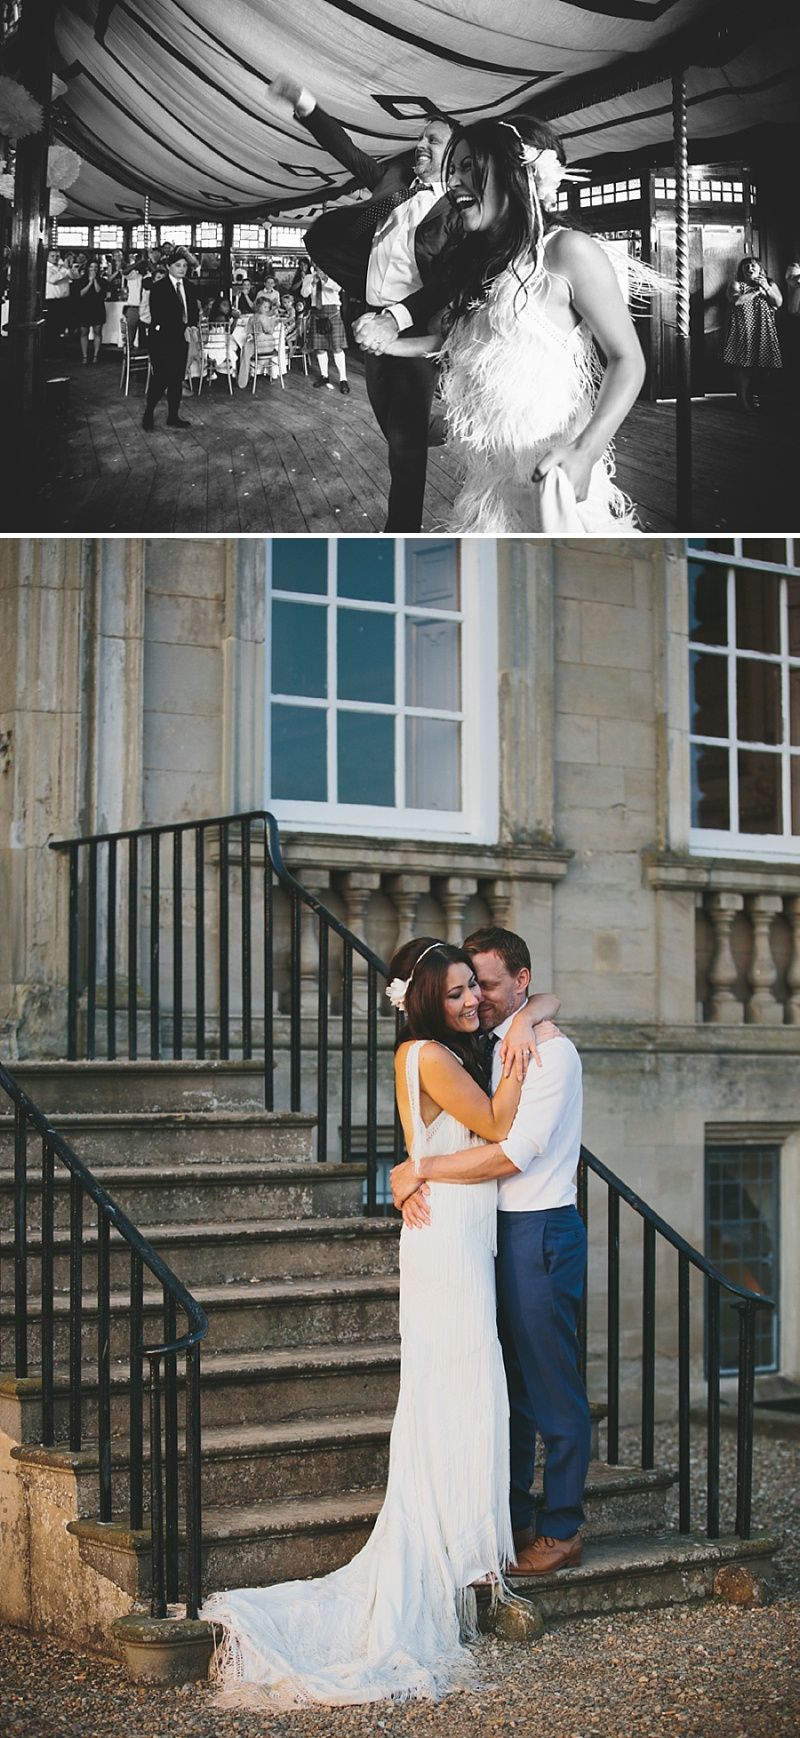 A Great Gatsby Woodstock themed wedding at Stanford Hall with a bridal gown from Blackburn Bridal Couture 0043 Woodstock Meets The Great Gatsby.